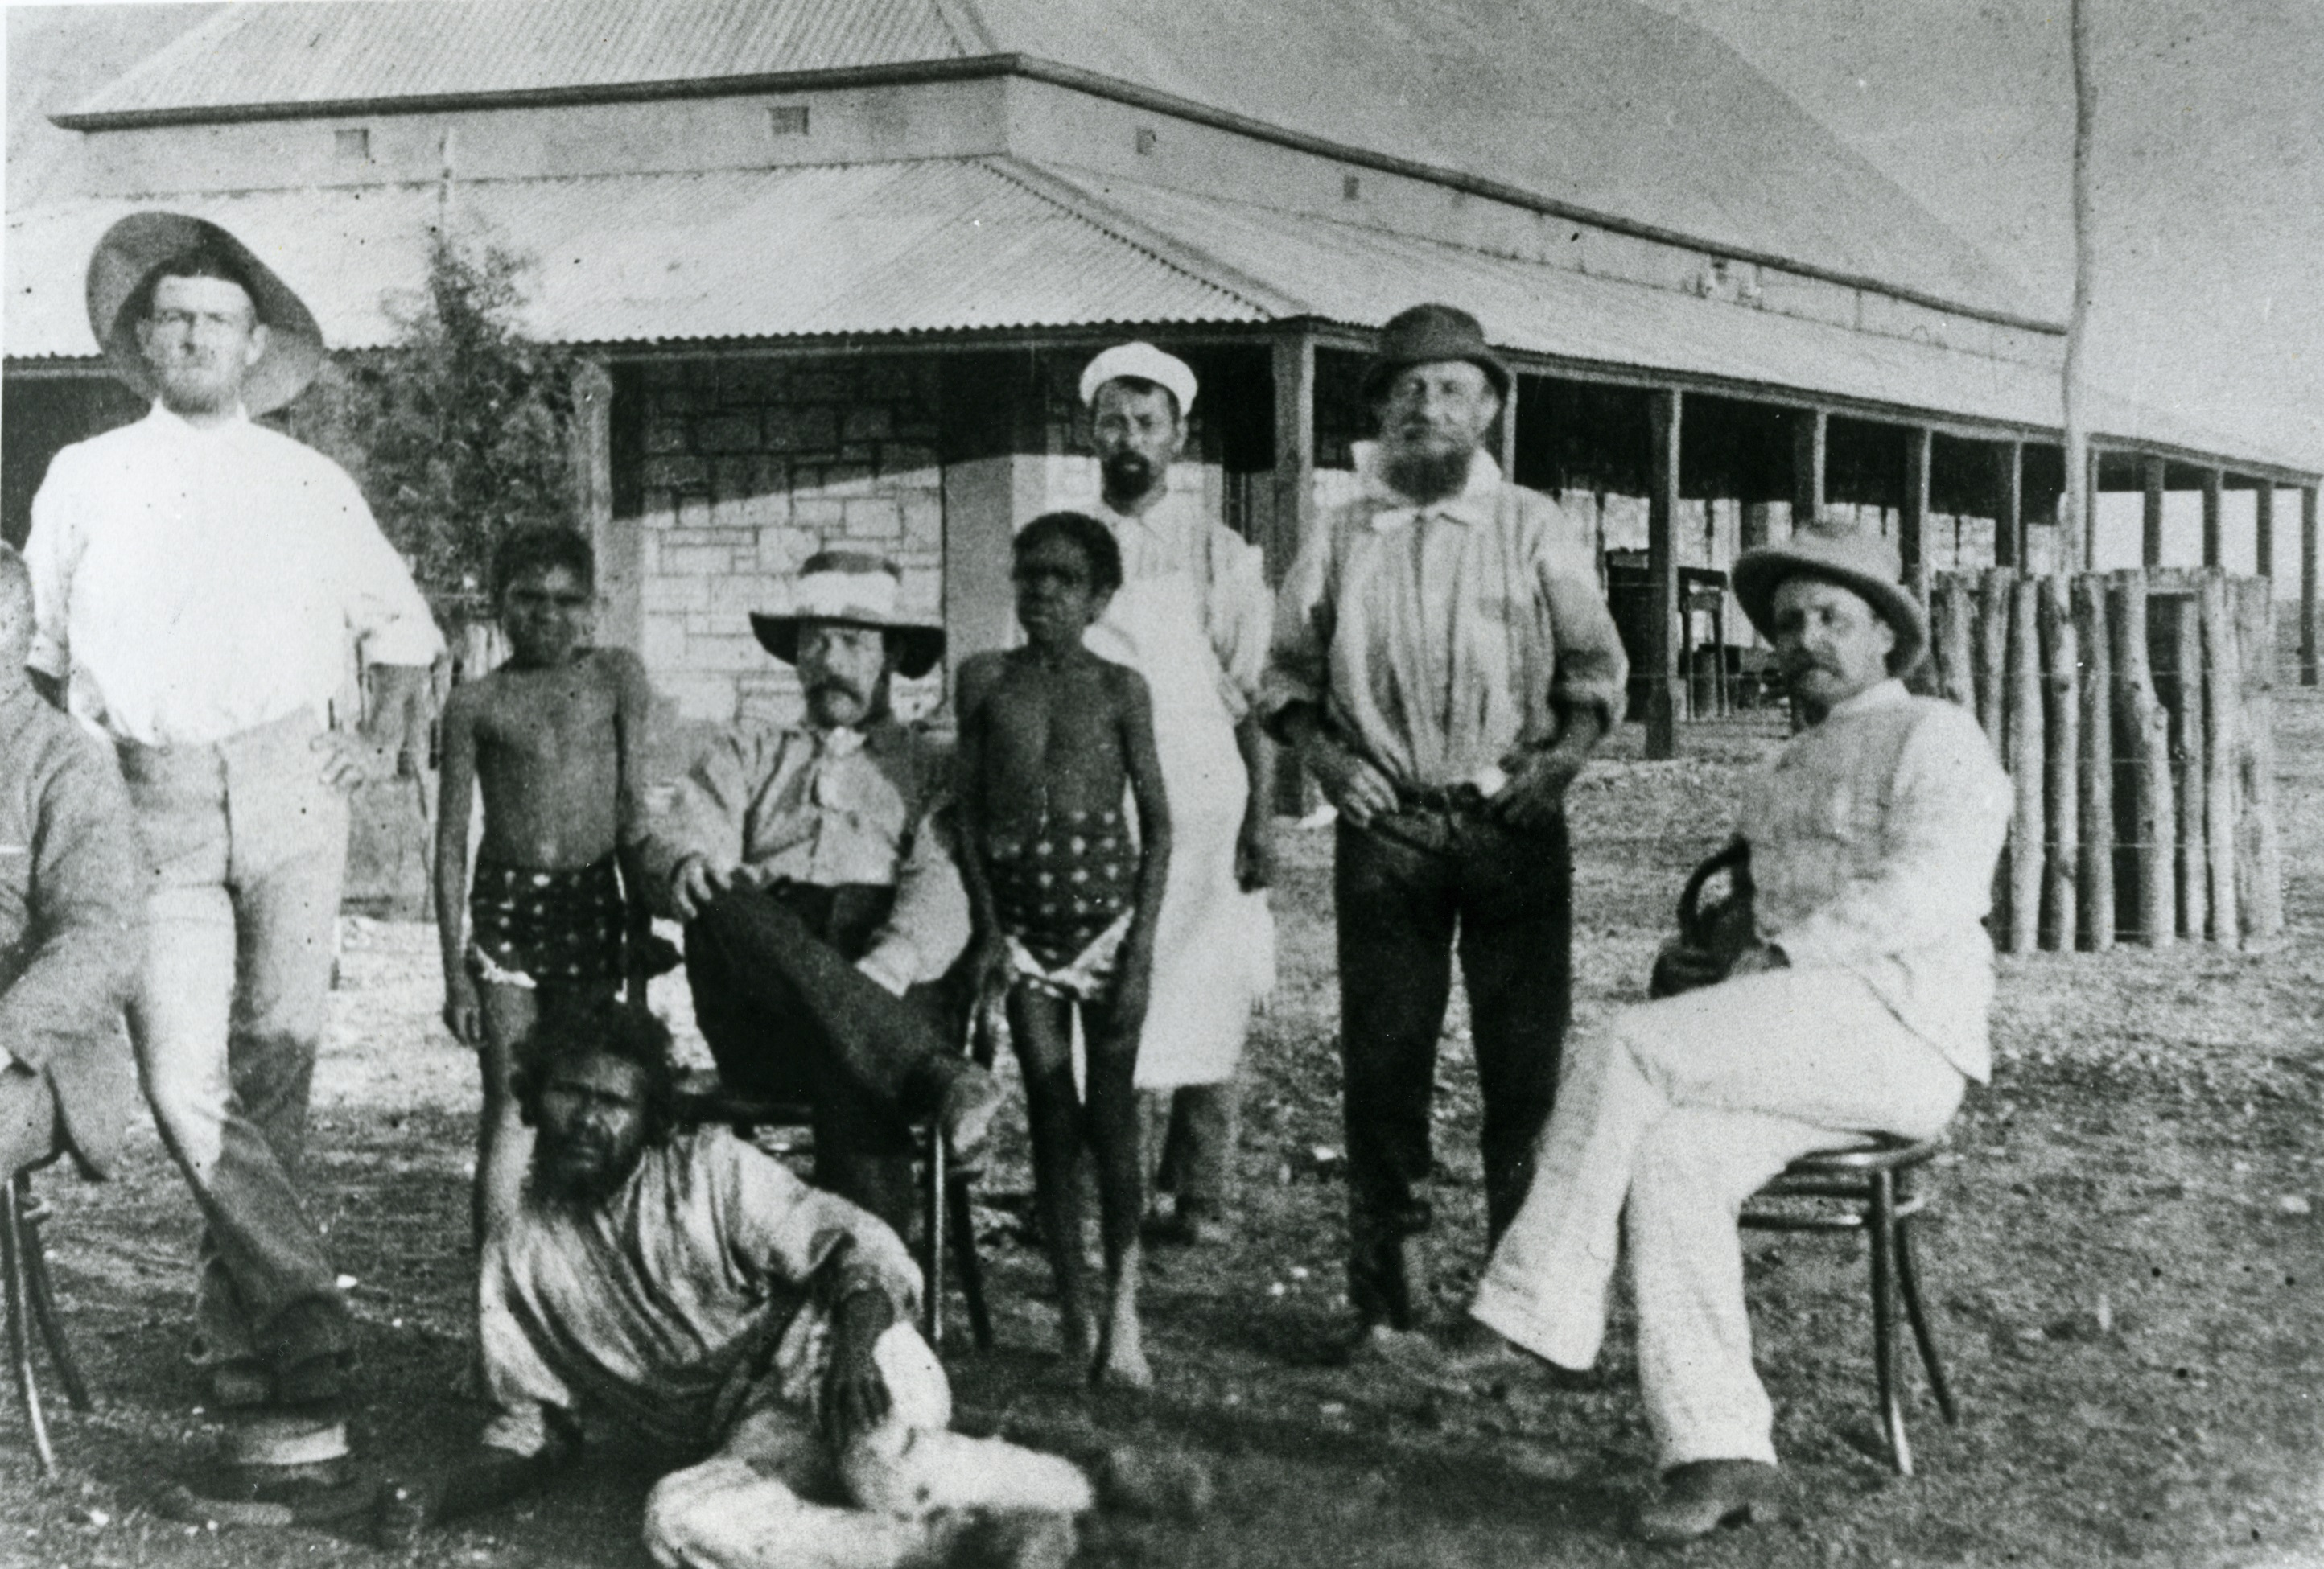 Depicts a group of Aboriginal and non-Aboriginal men and boys in front of a stone building.